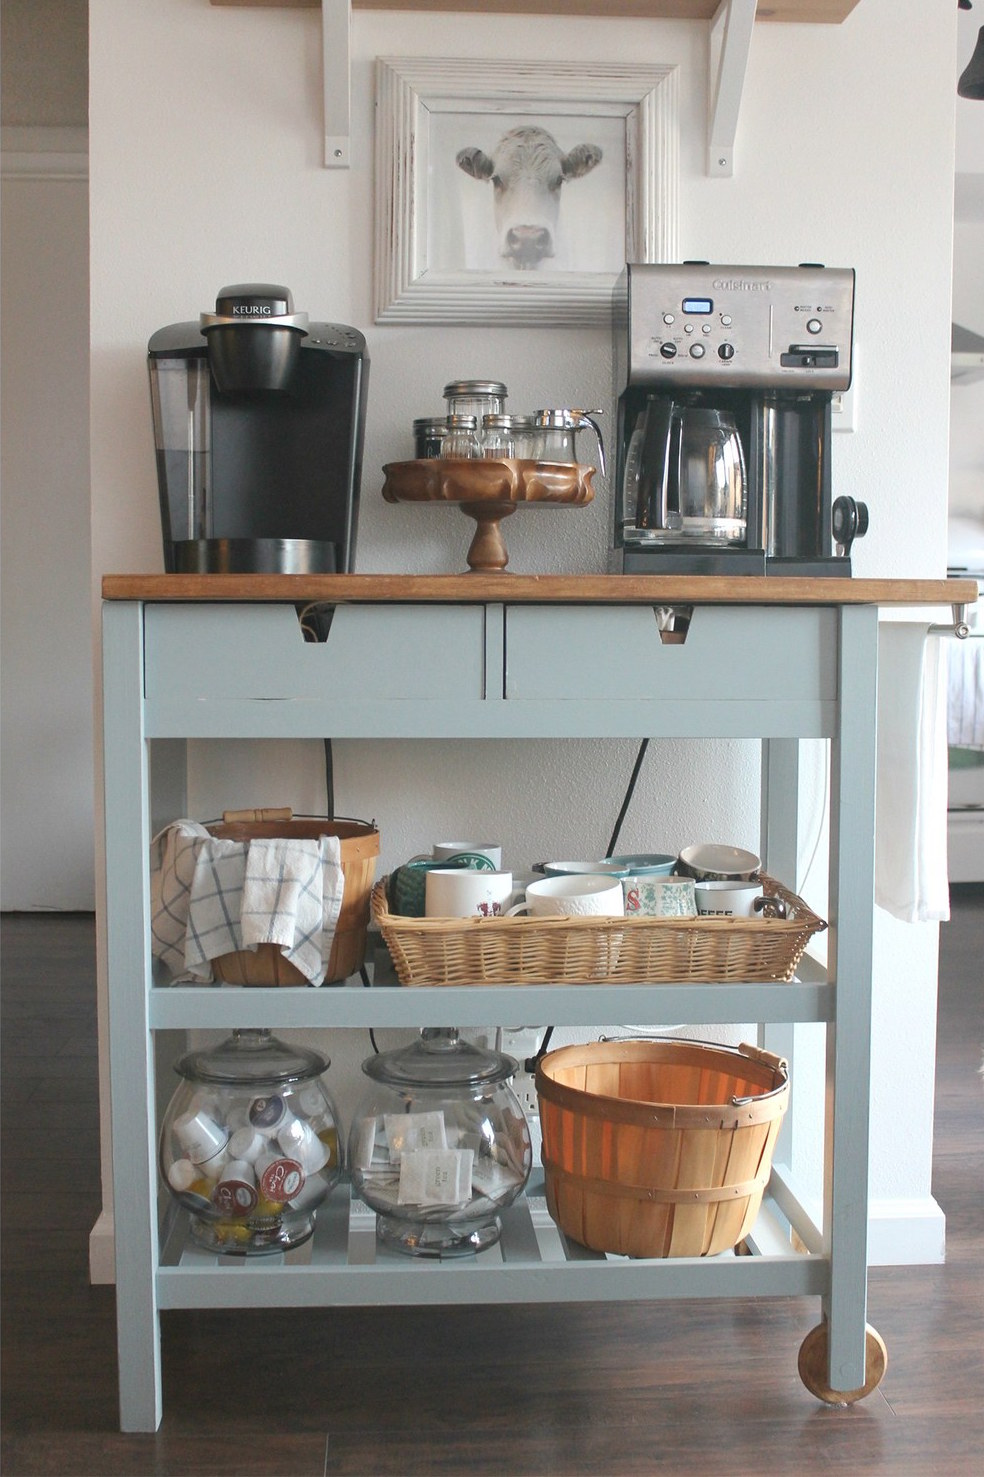 kitchen storage hacks 7 brilliant ikea hacks to organize your kitchen real simple 3149